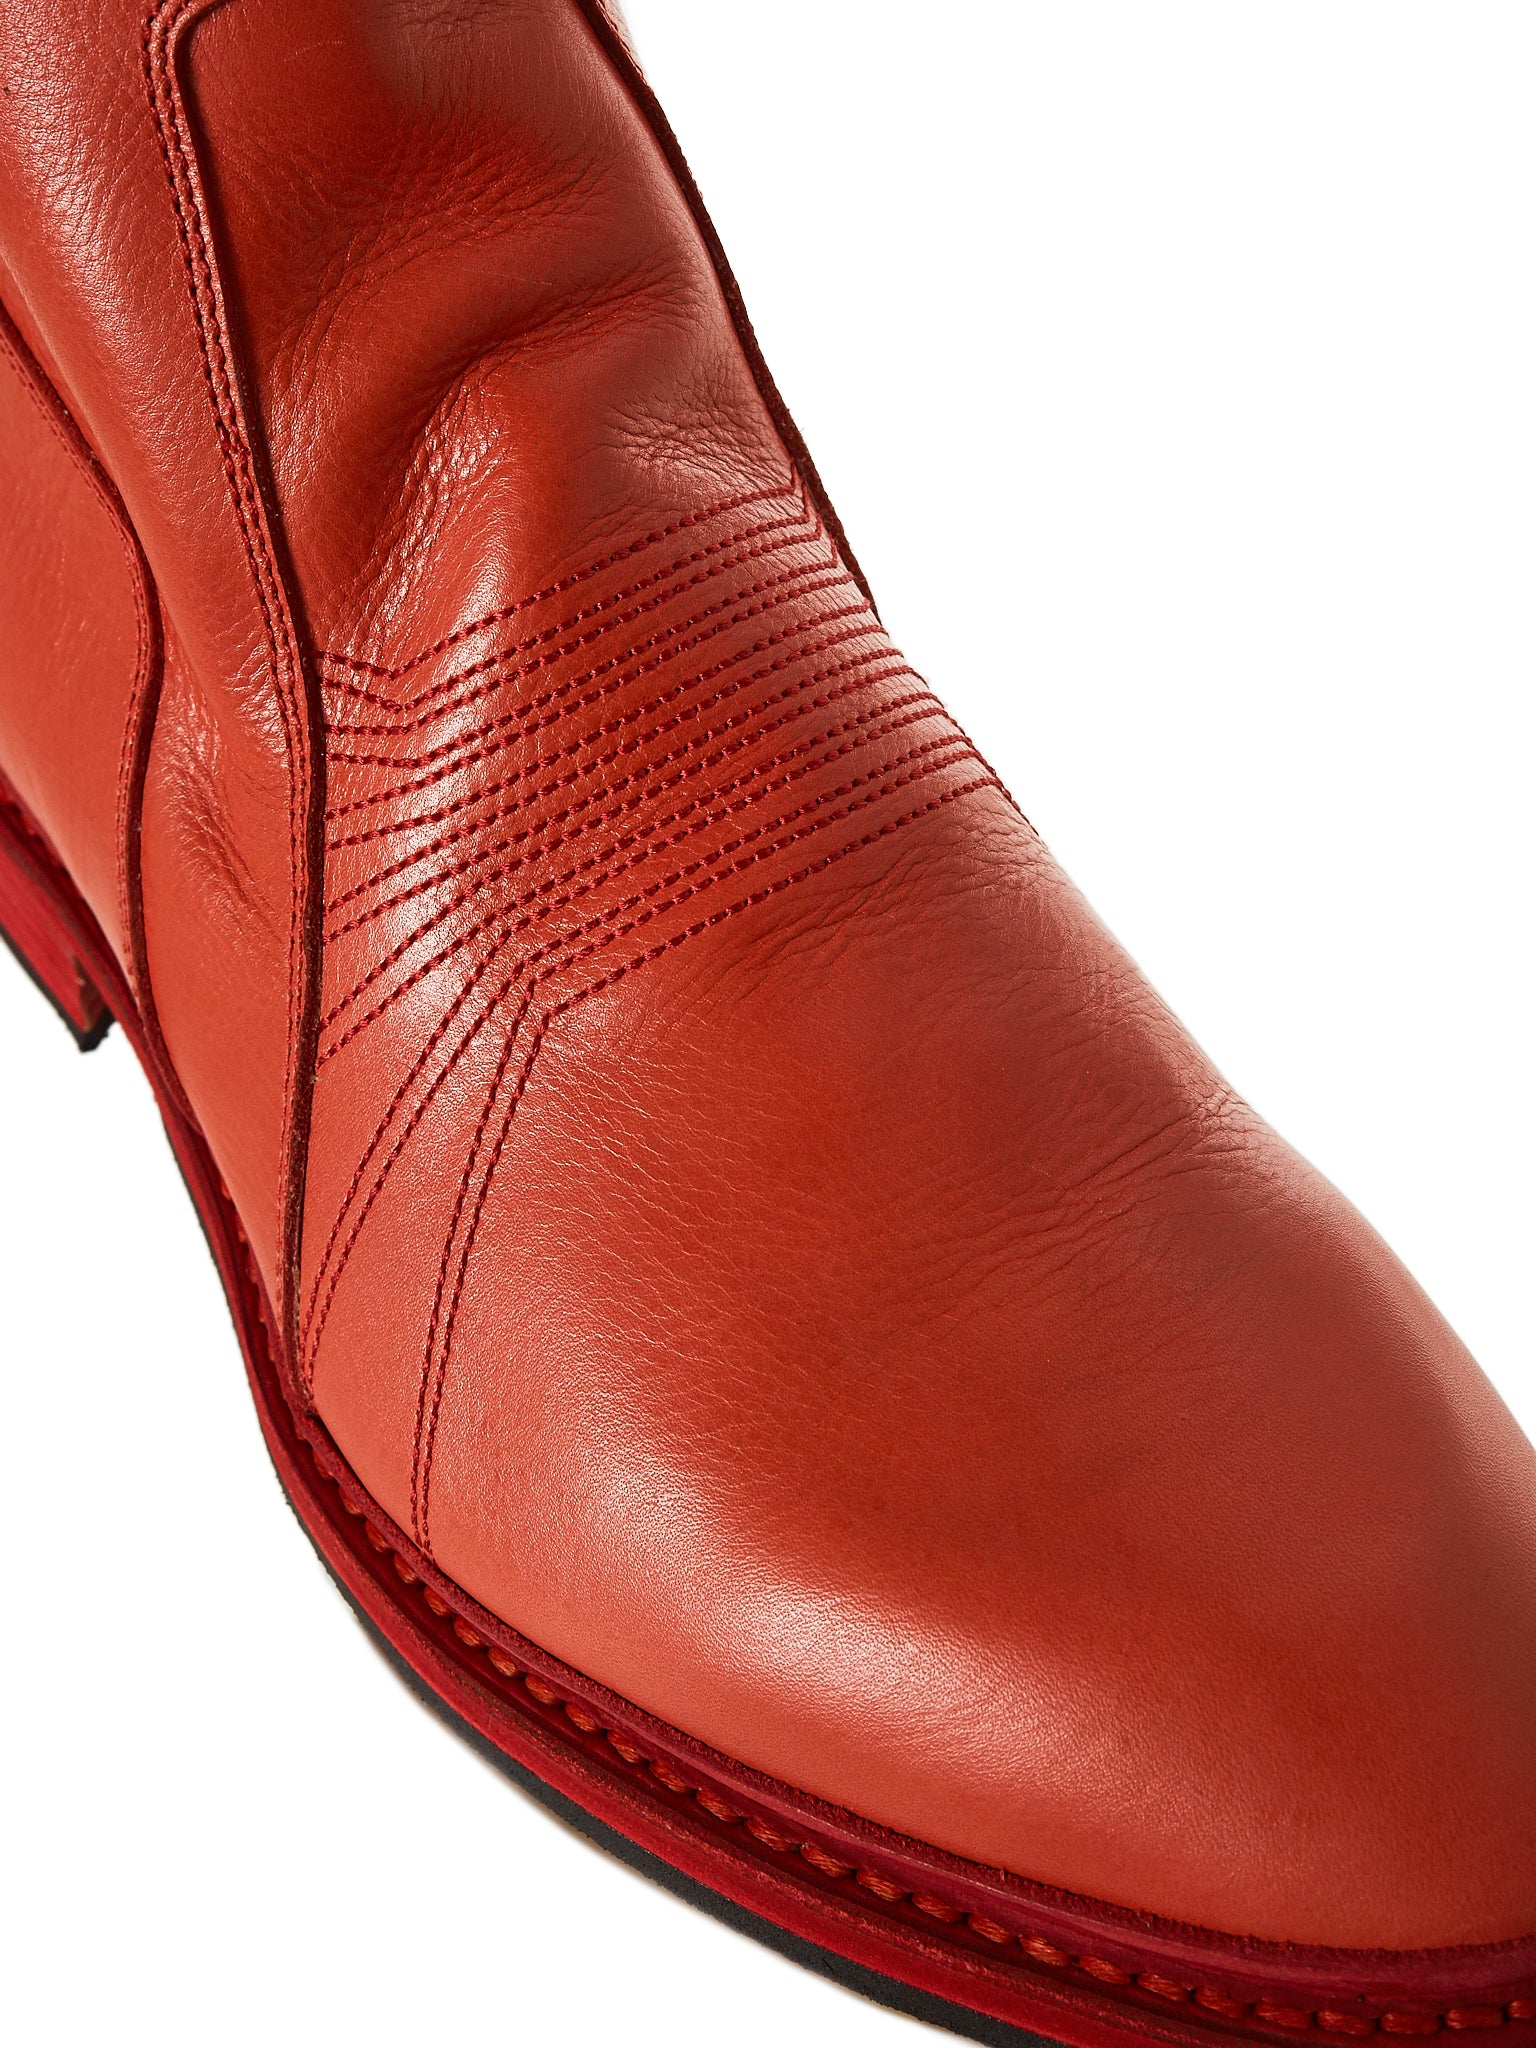 Julius Western Boot - Hlorenzo detail 1